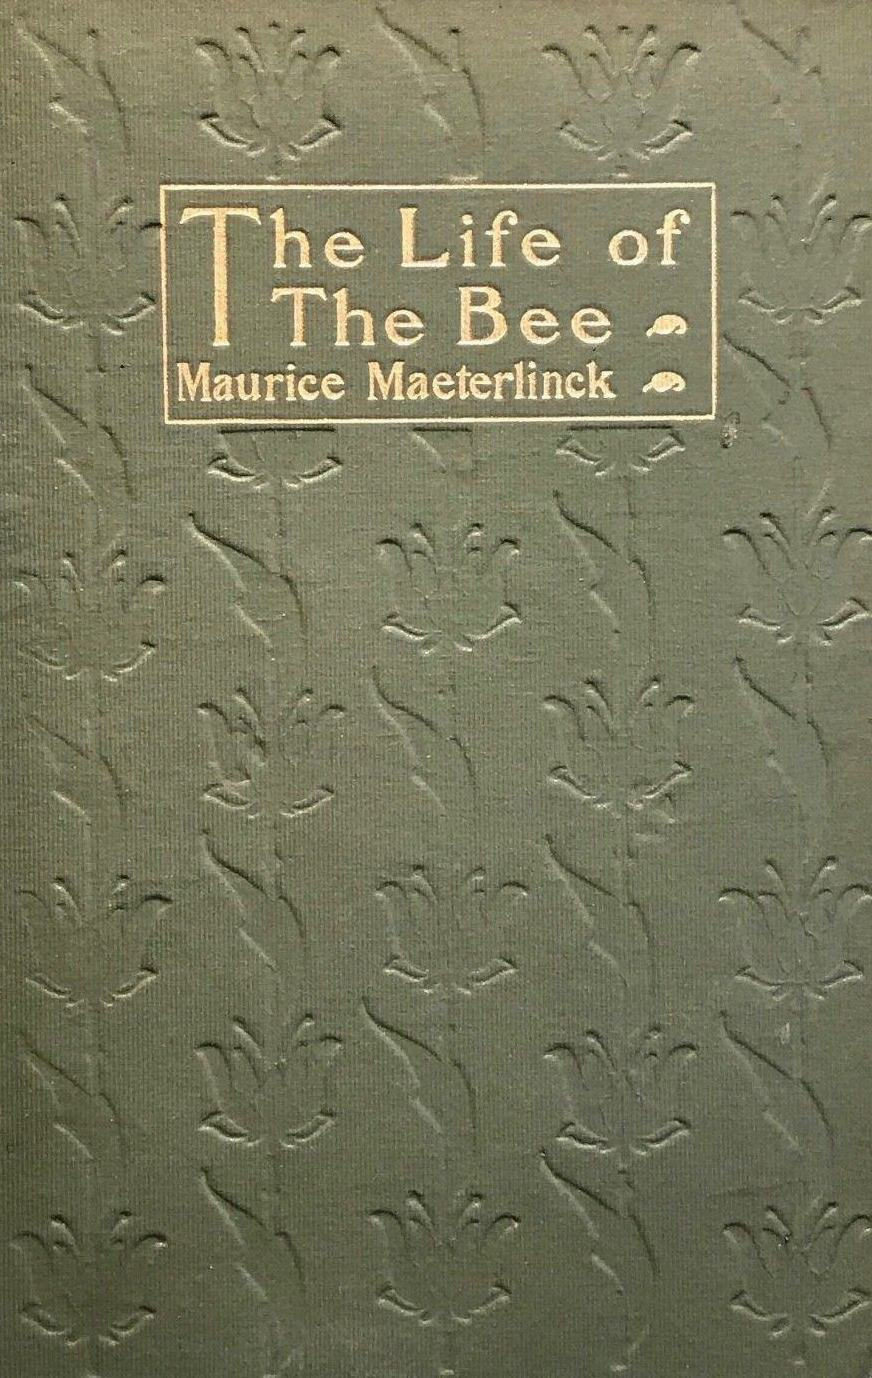 Maurice Maeterlinck, The Life of the Bee, cover design by Kahlil Gibran, New York: Dodd, Mead and Co., 1909.